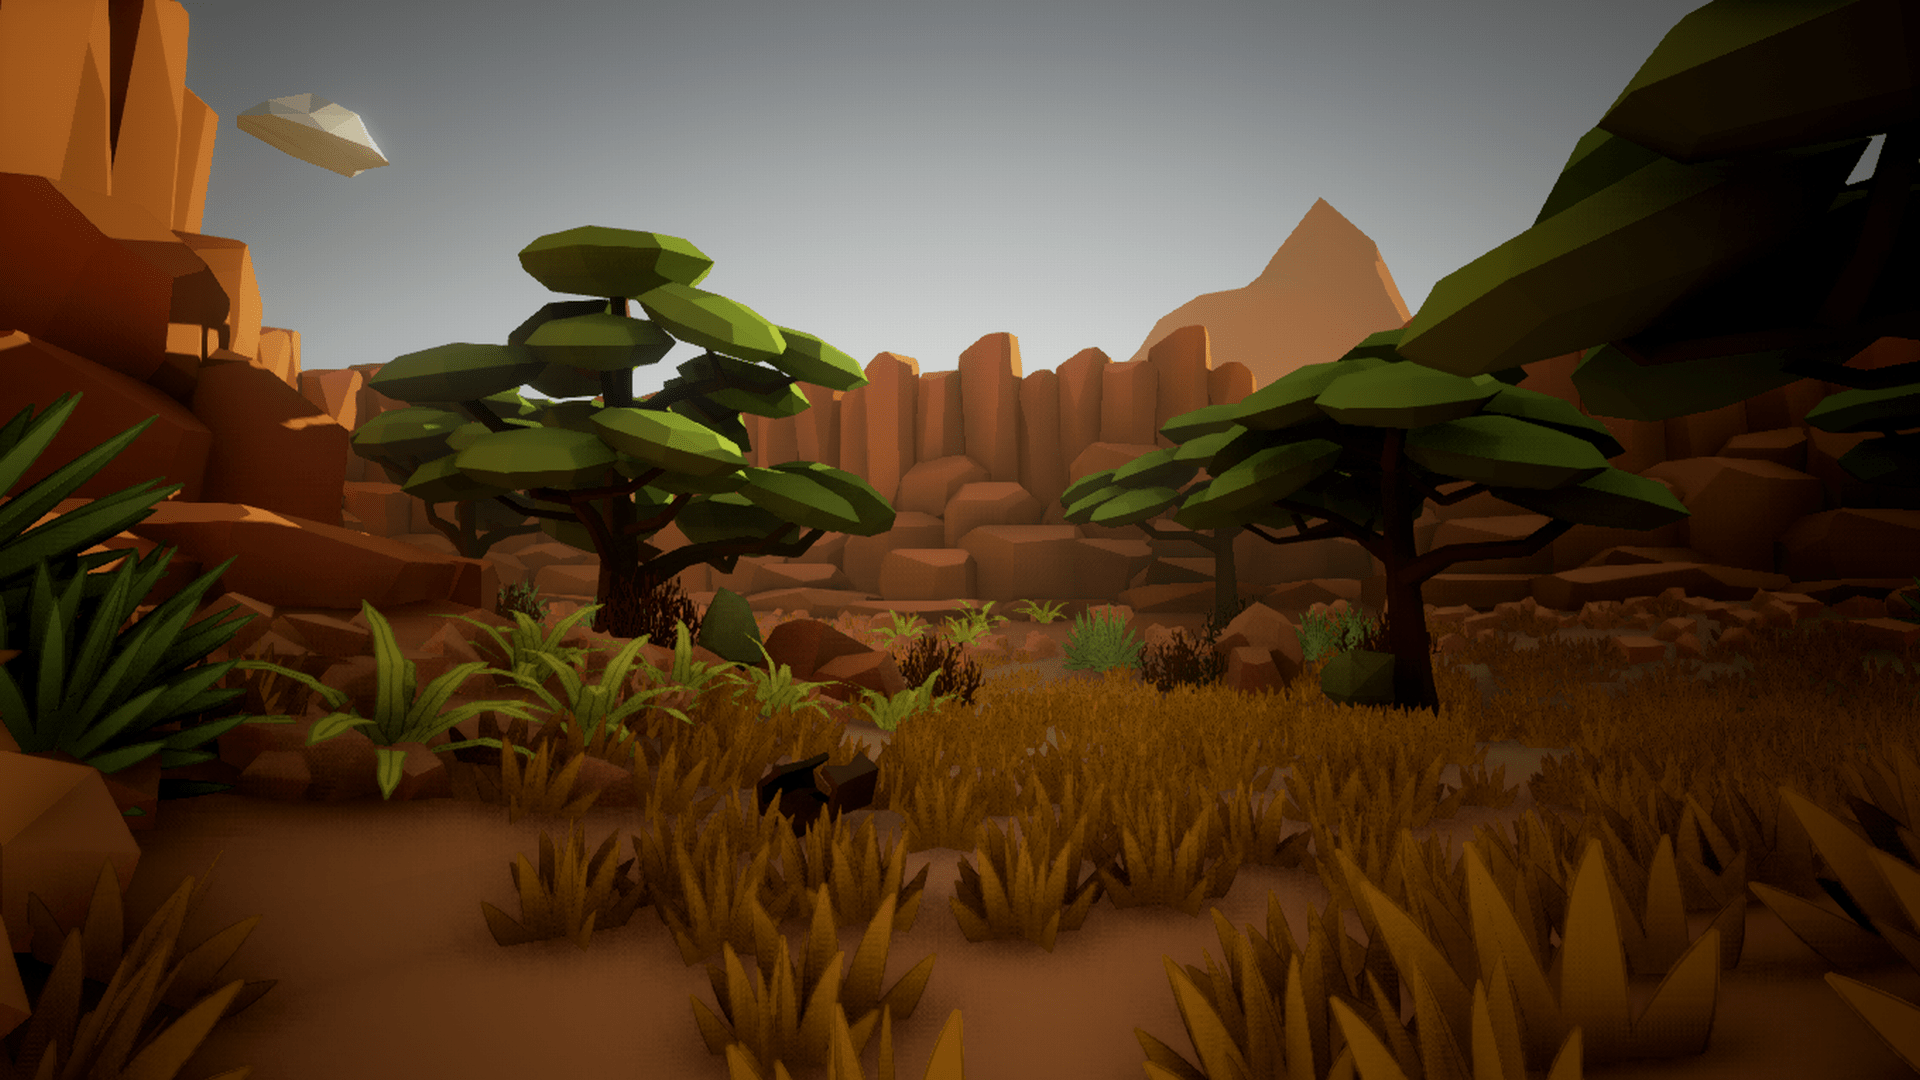 Olbert's Low Poly: Desert by Whitman And Olbert in